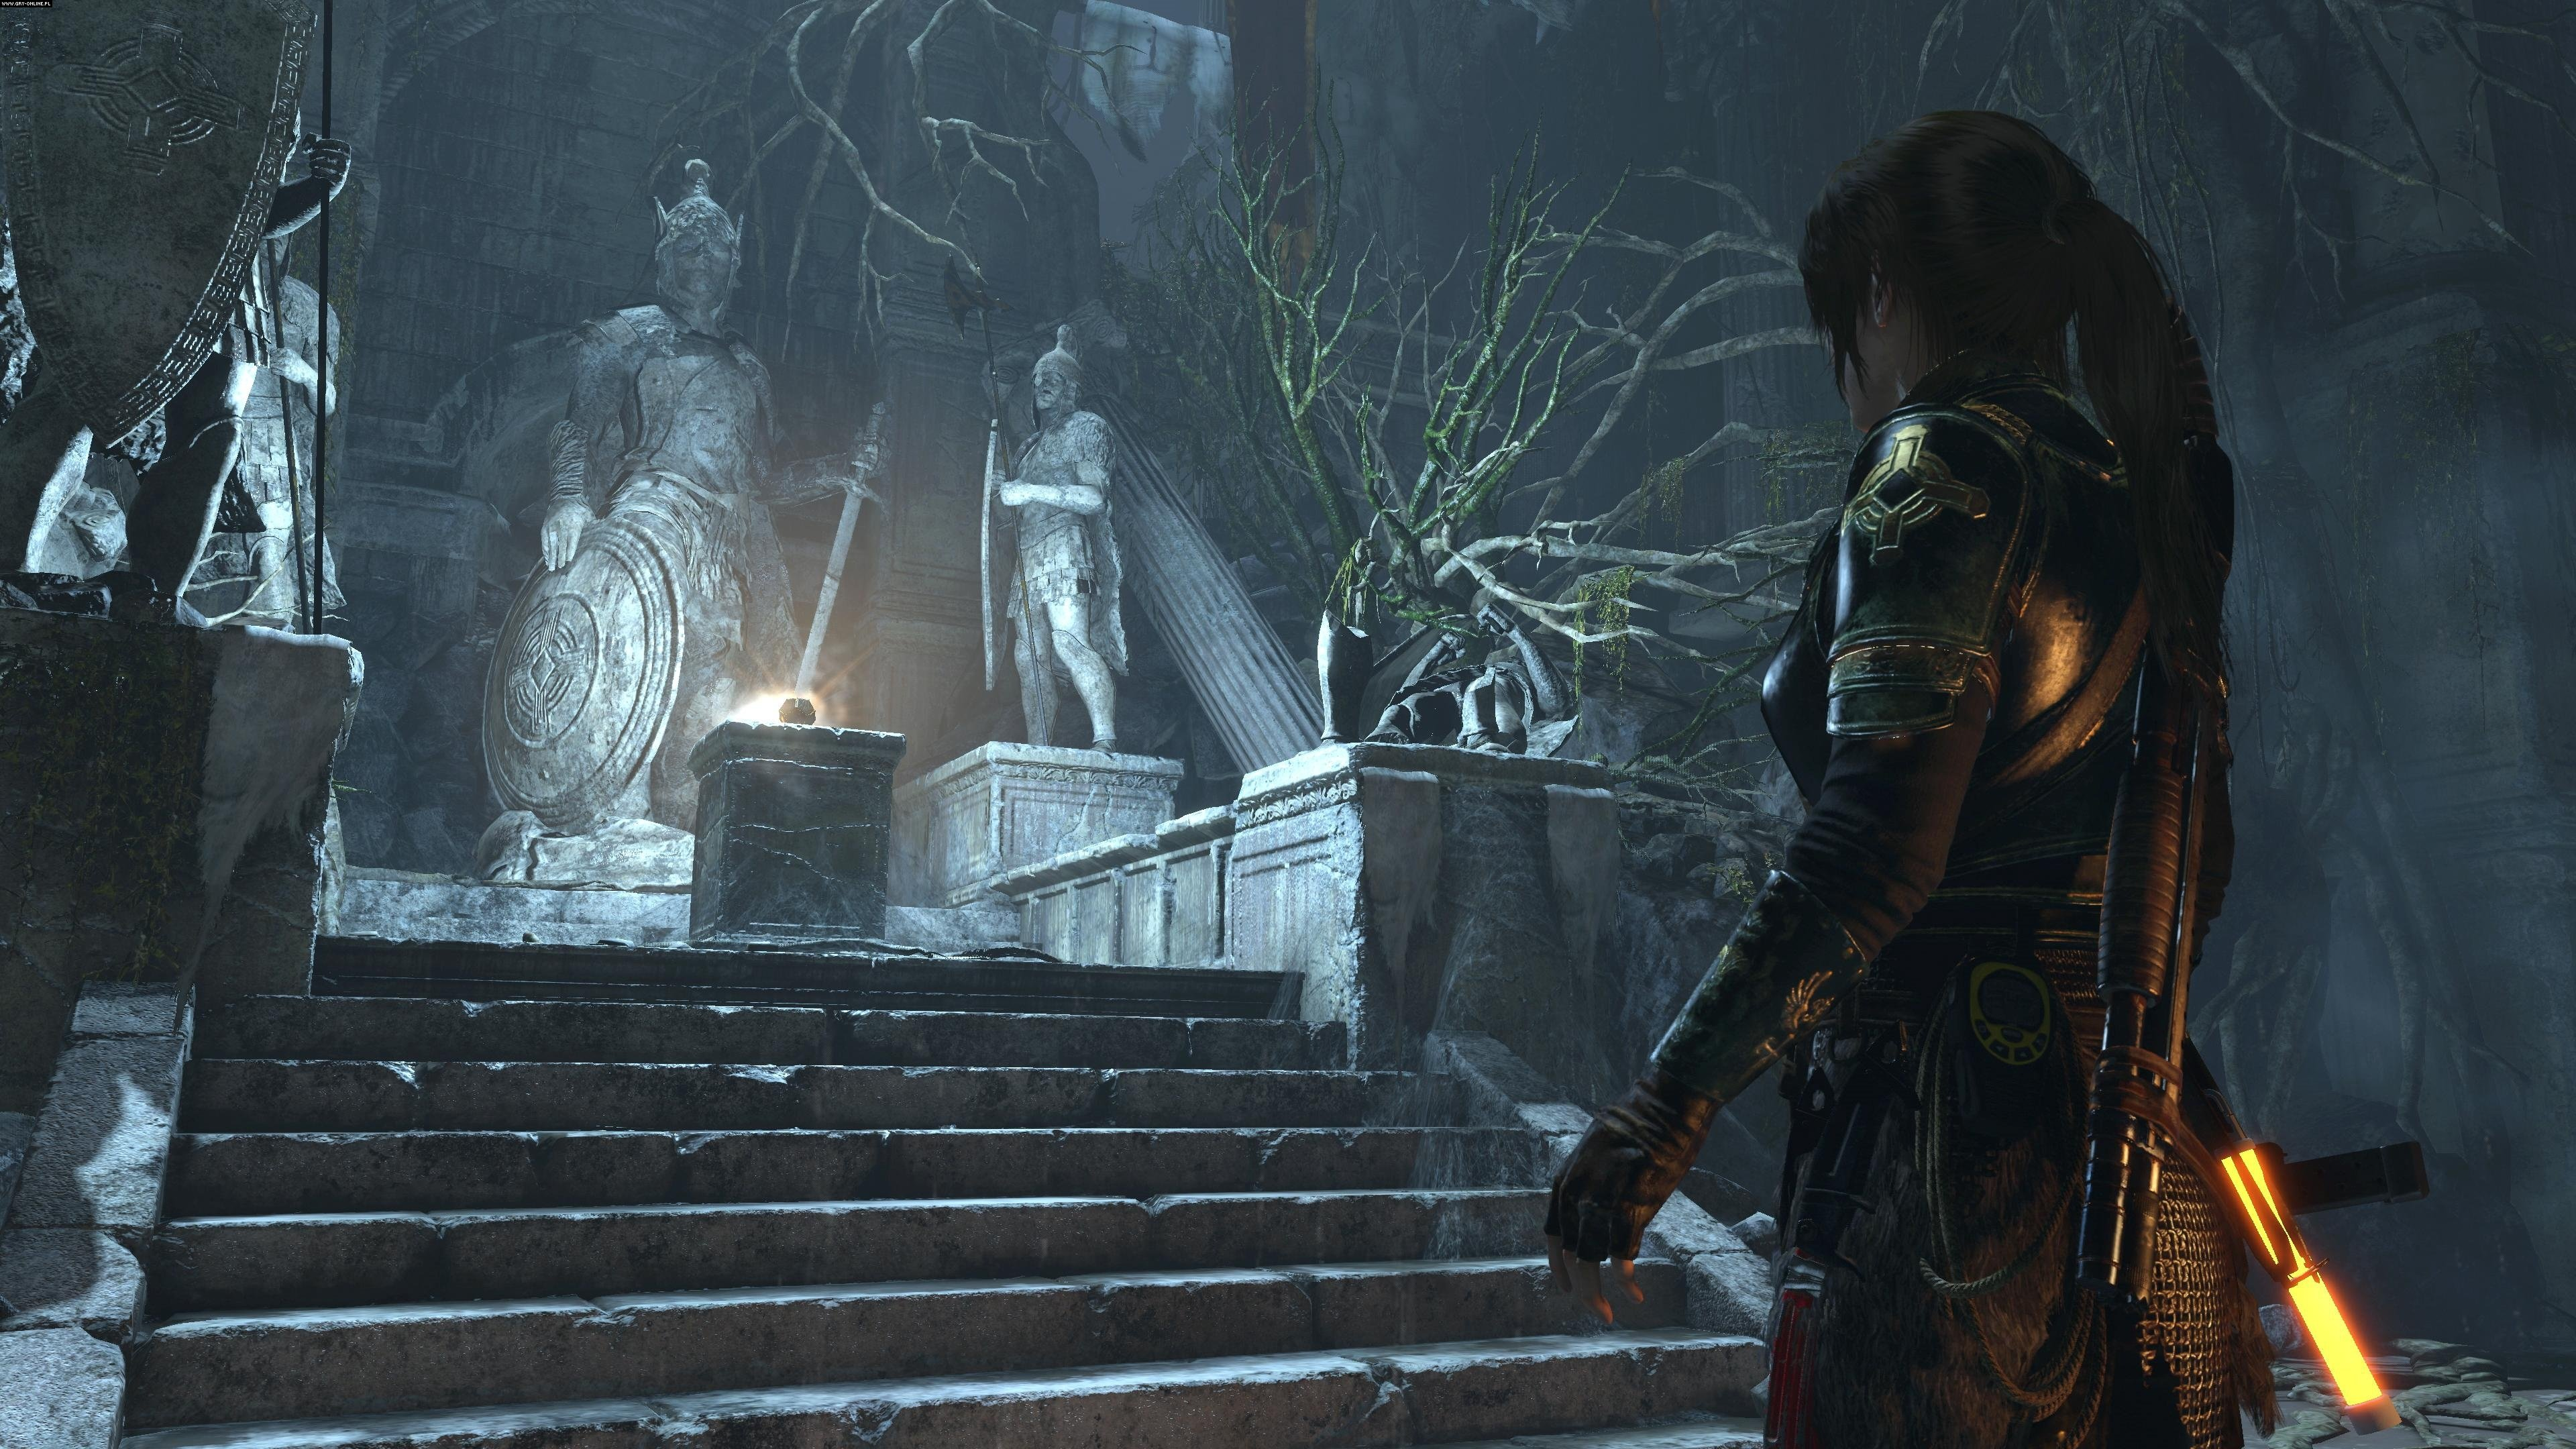 Rise of the Tomb Raider PC Games Image 2/126, Crystal Dynamics, Square-Enix / Eidos